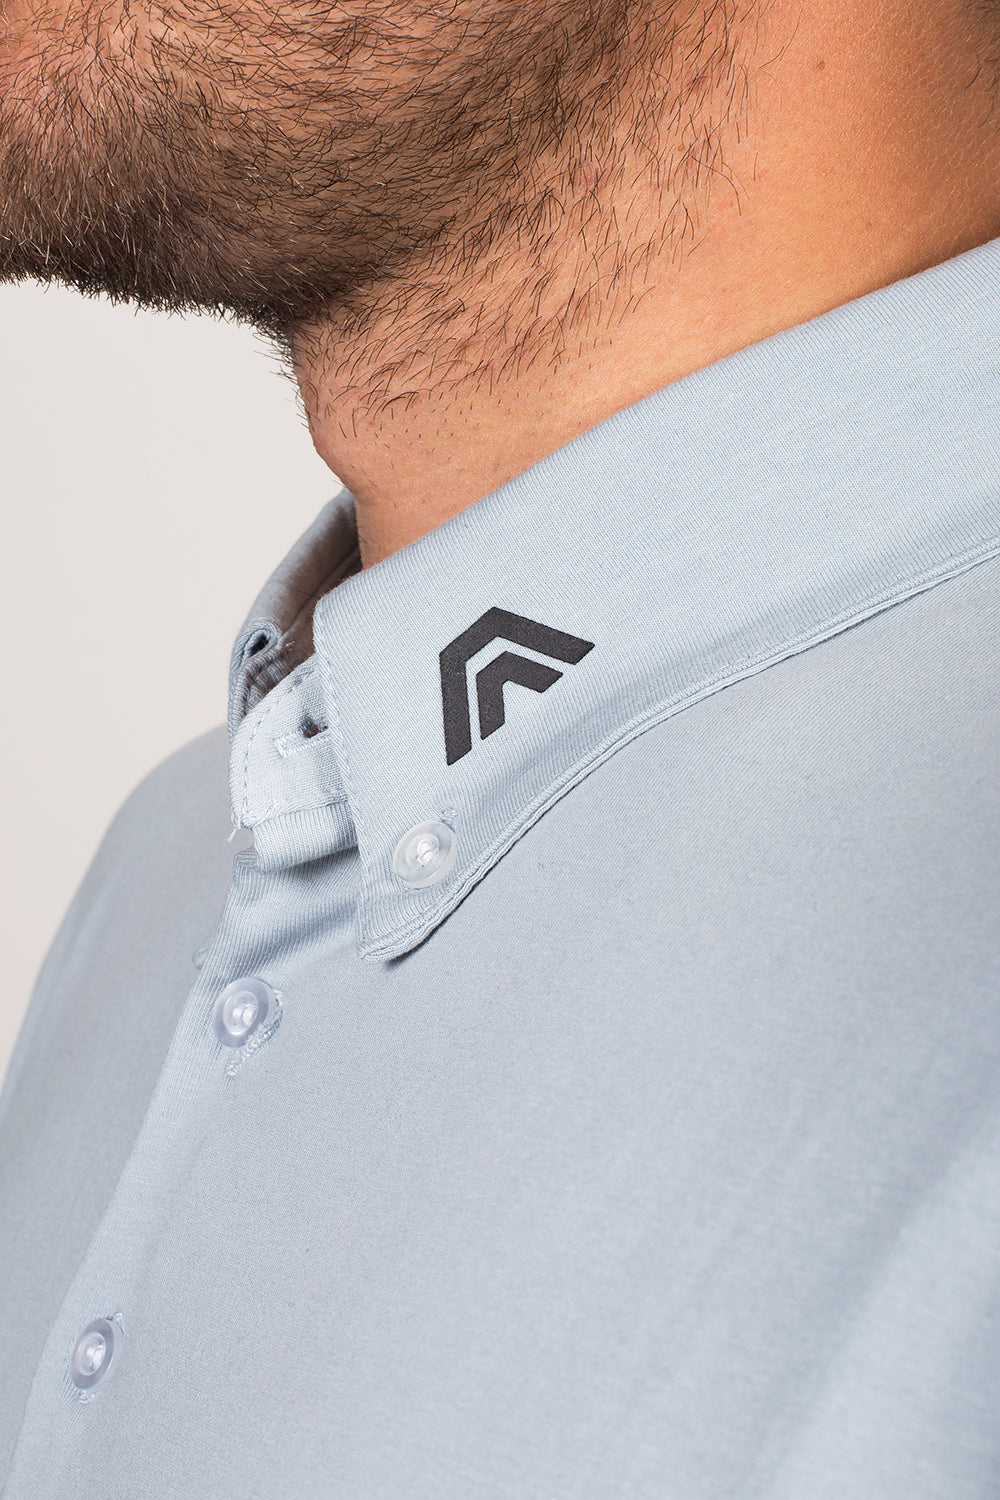 battleship grey, aces original, golf apparel, golf clothing, polo, athletic fit, premium quality, style fused with performance, affordable, aces